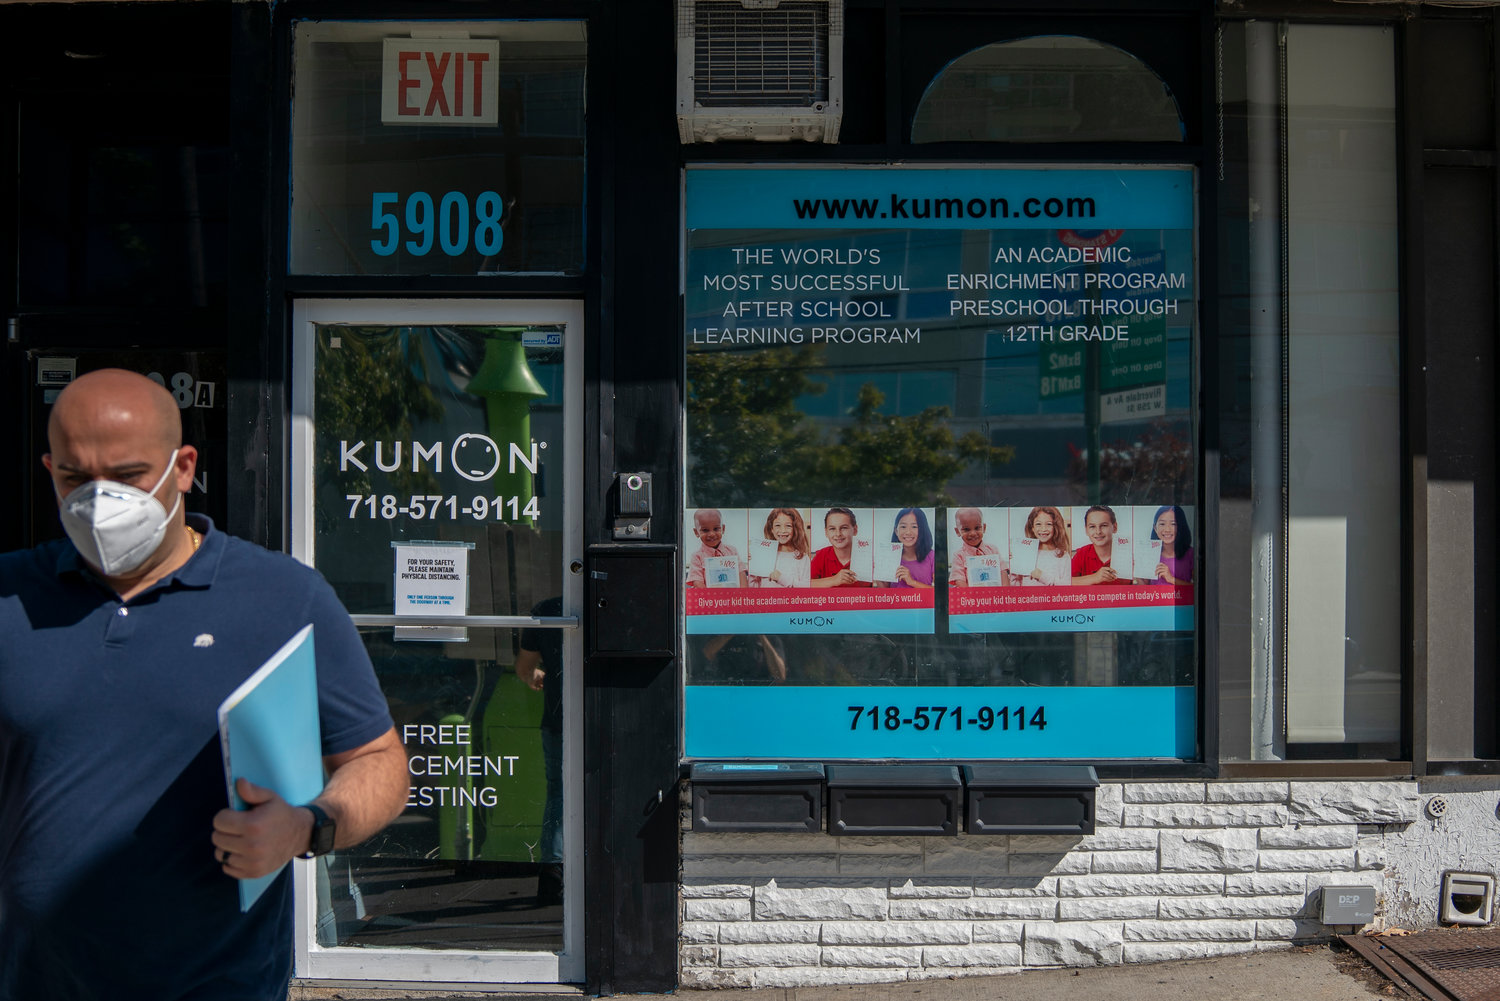 While Mathnasium may have closed, another academic support center on Riverdale Avenue — Kumon — remains open. Kumon moved into smaller digs next door, but it's actually seeing more scheduled sessions as a result of the challenges of hybrid and remote learning.